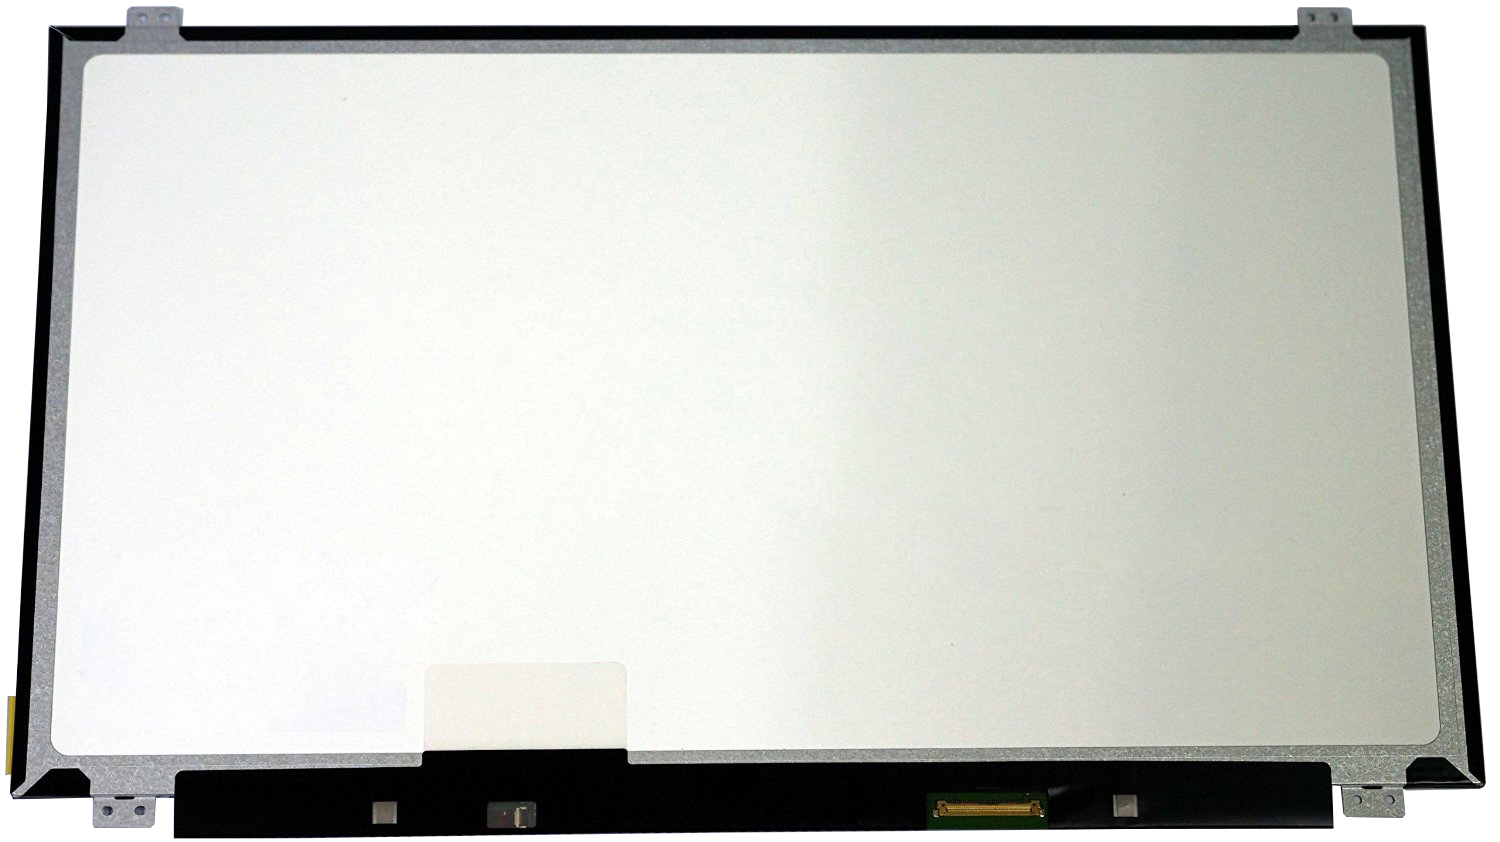 QuYing Laptop LCD Screen for Acer ASPIRE E5-471P SERIES